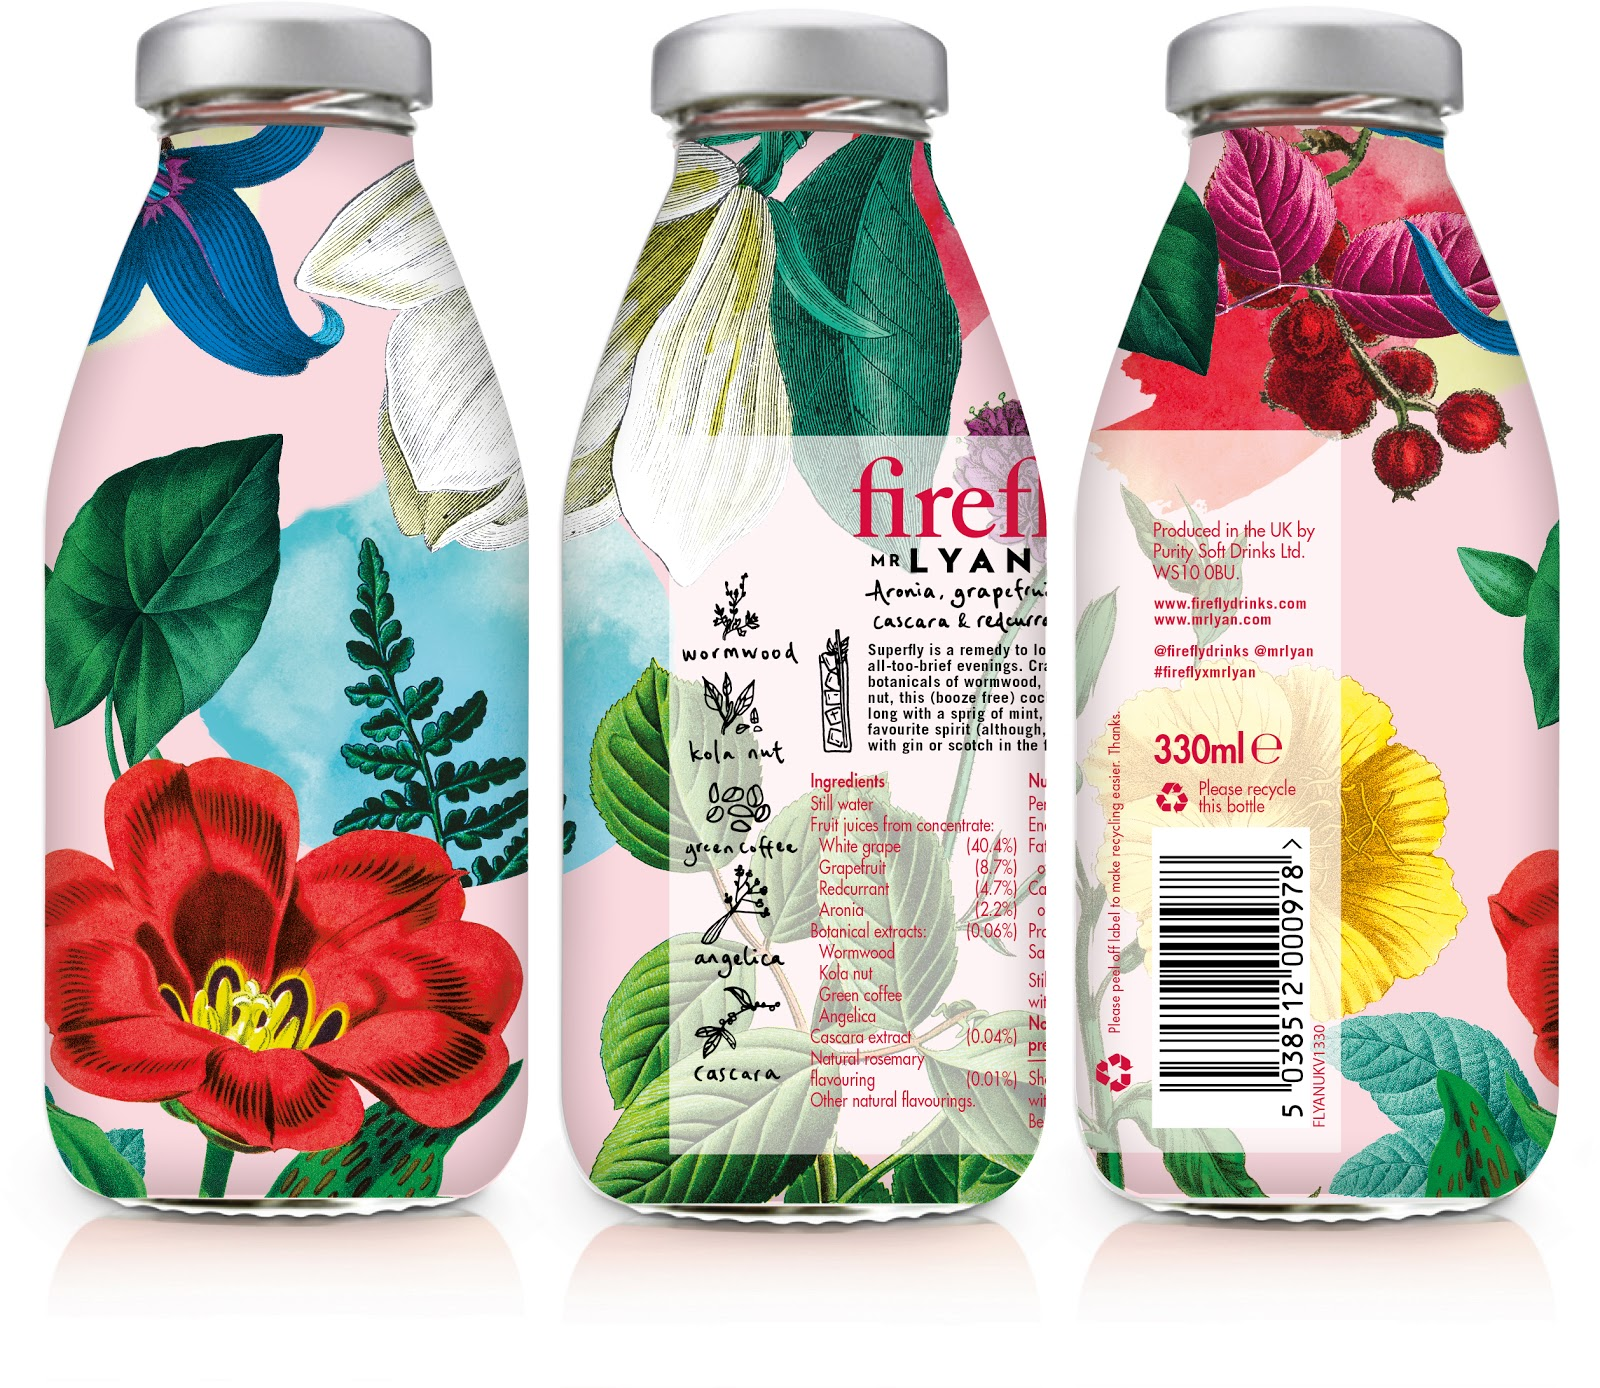 WIN! Mr Lyan's new Superfly Drink + a bottle of Gin